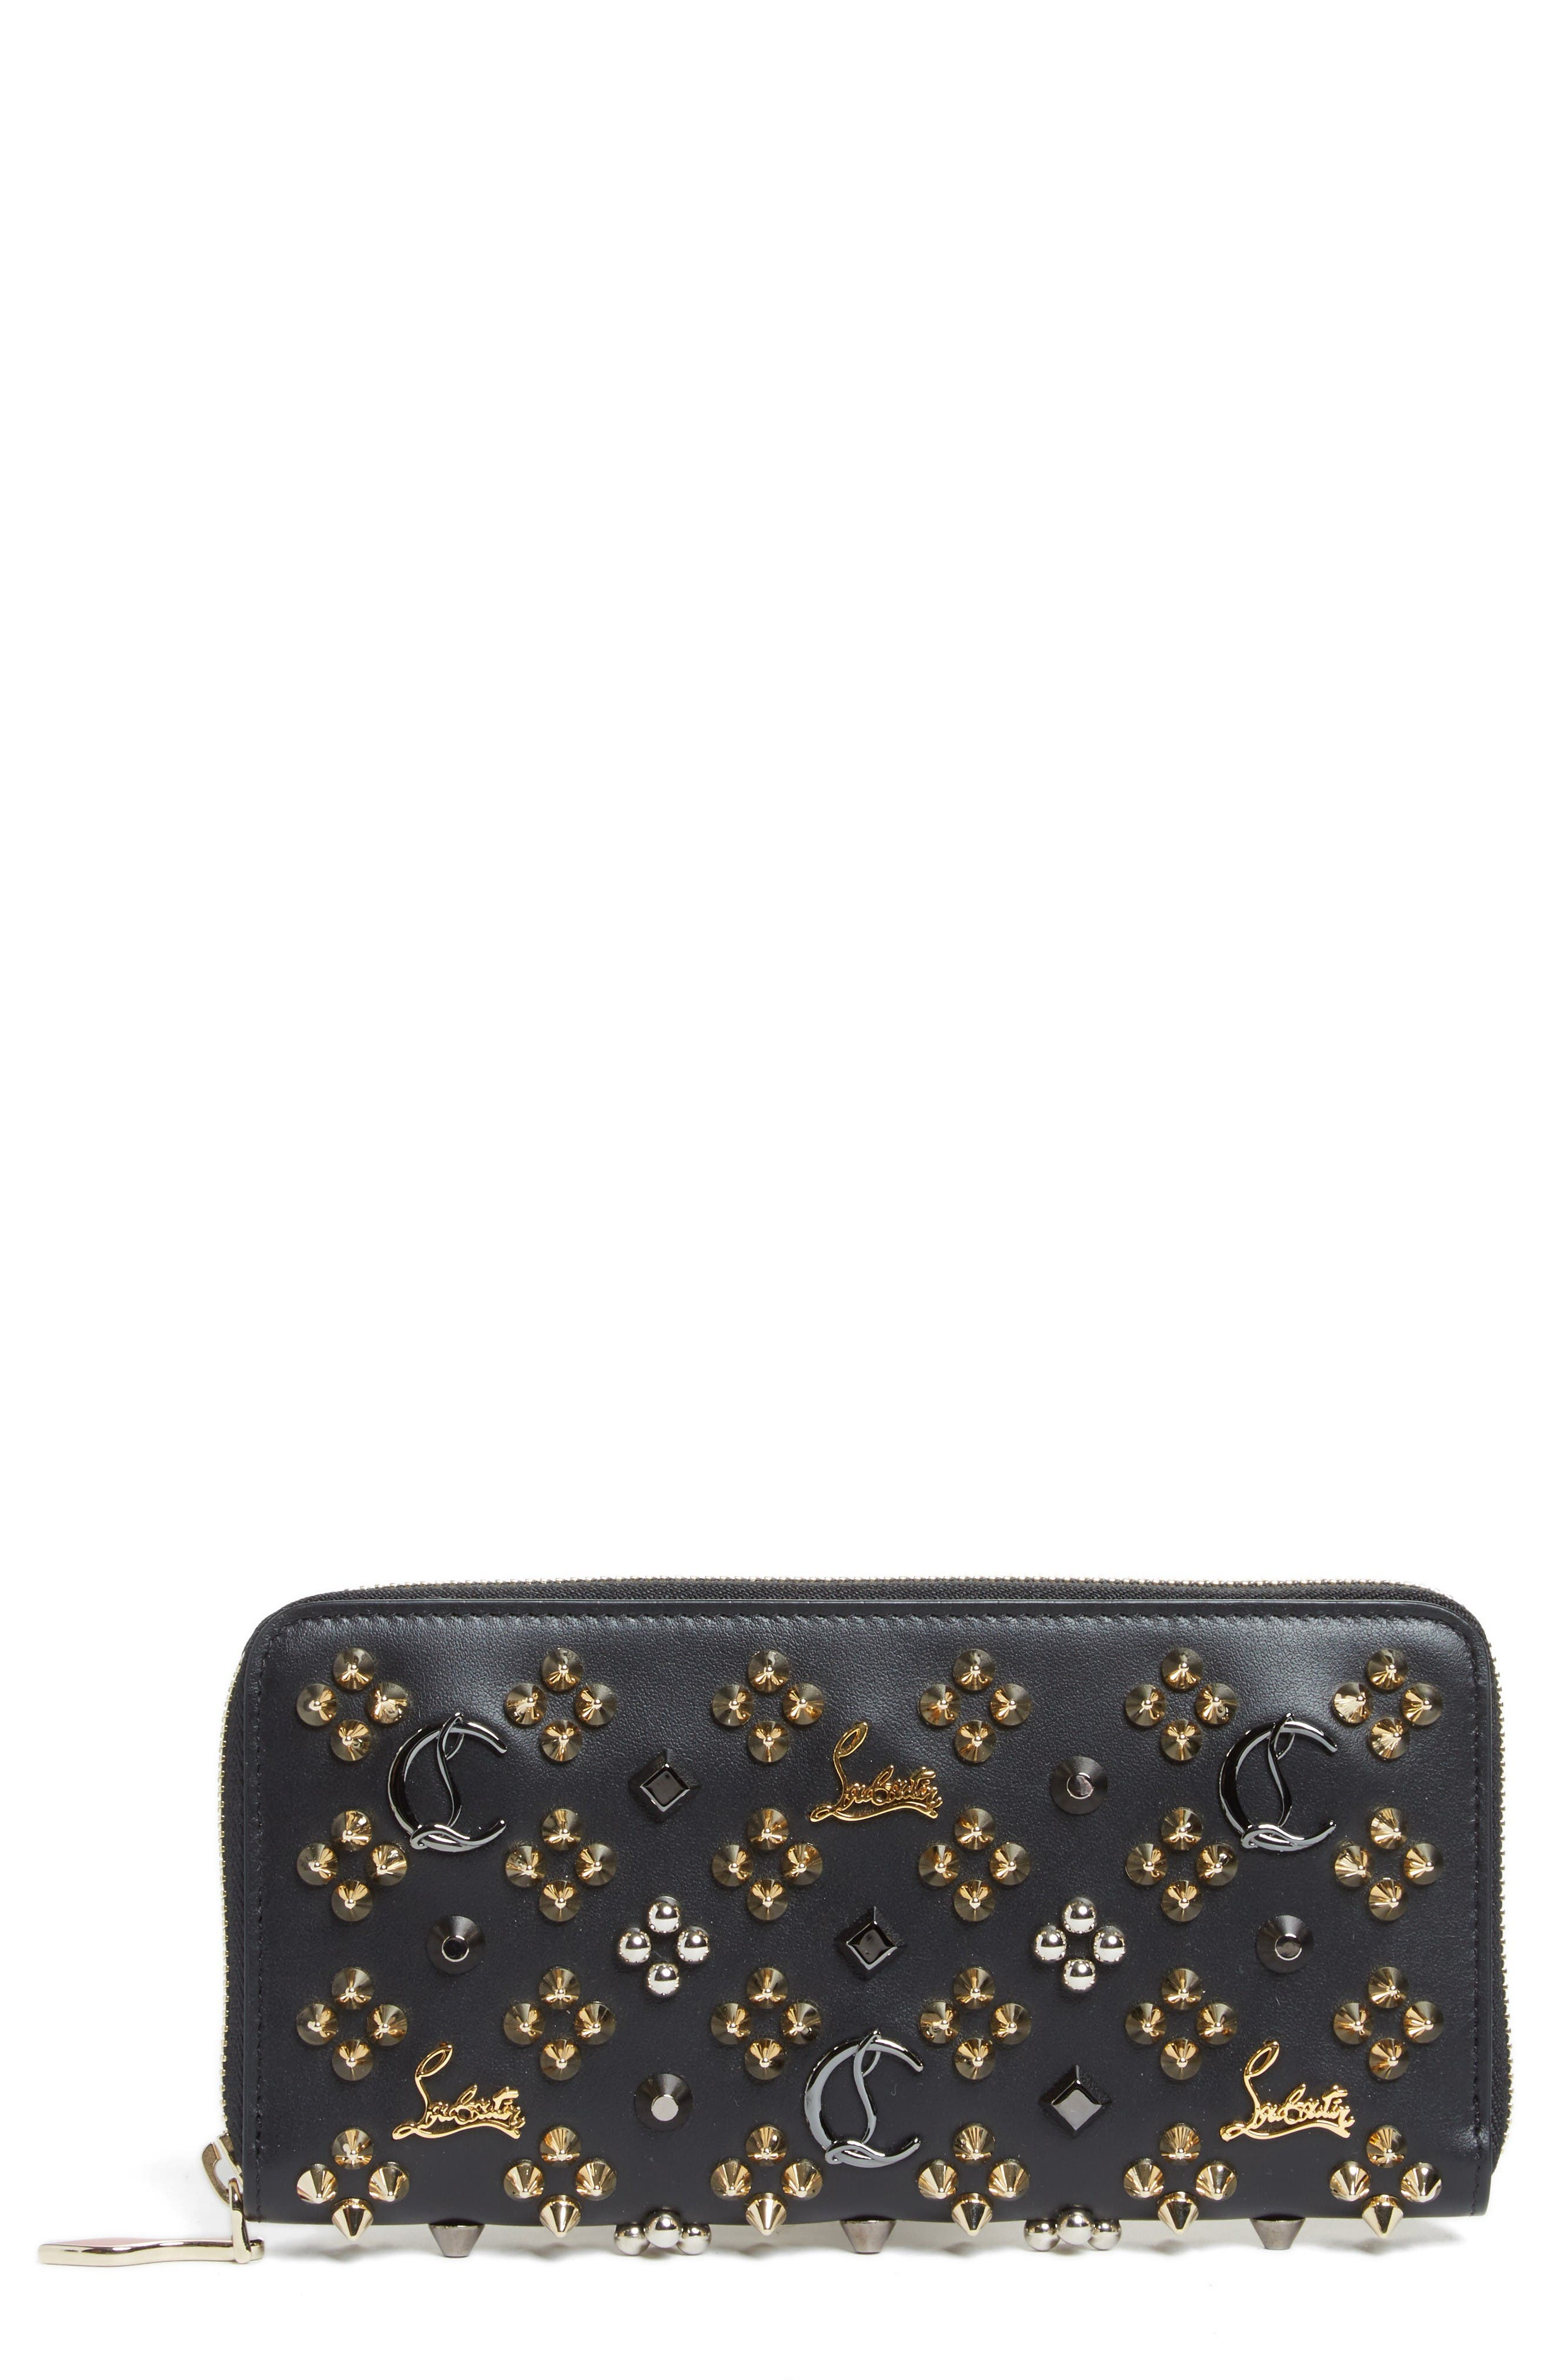 Main Image - Christian Louboutin Panettone Spiked Calfskin Wallet